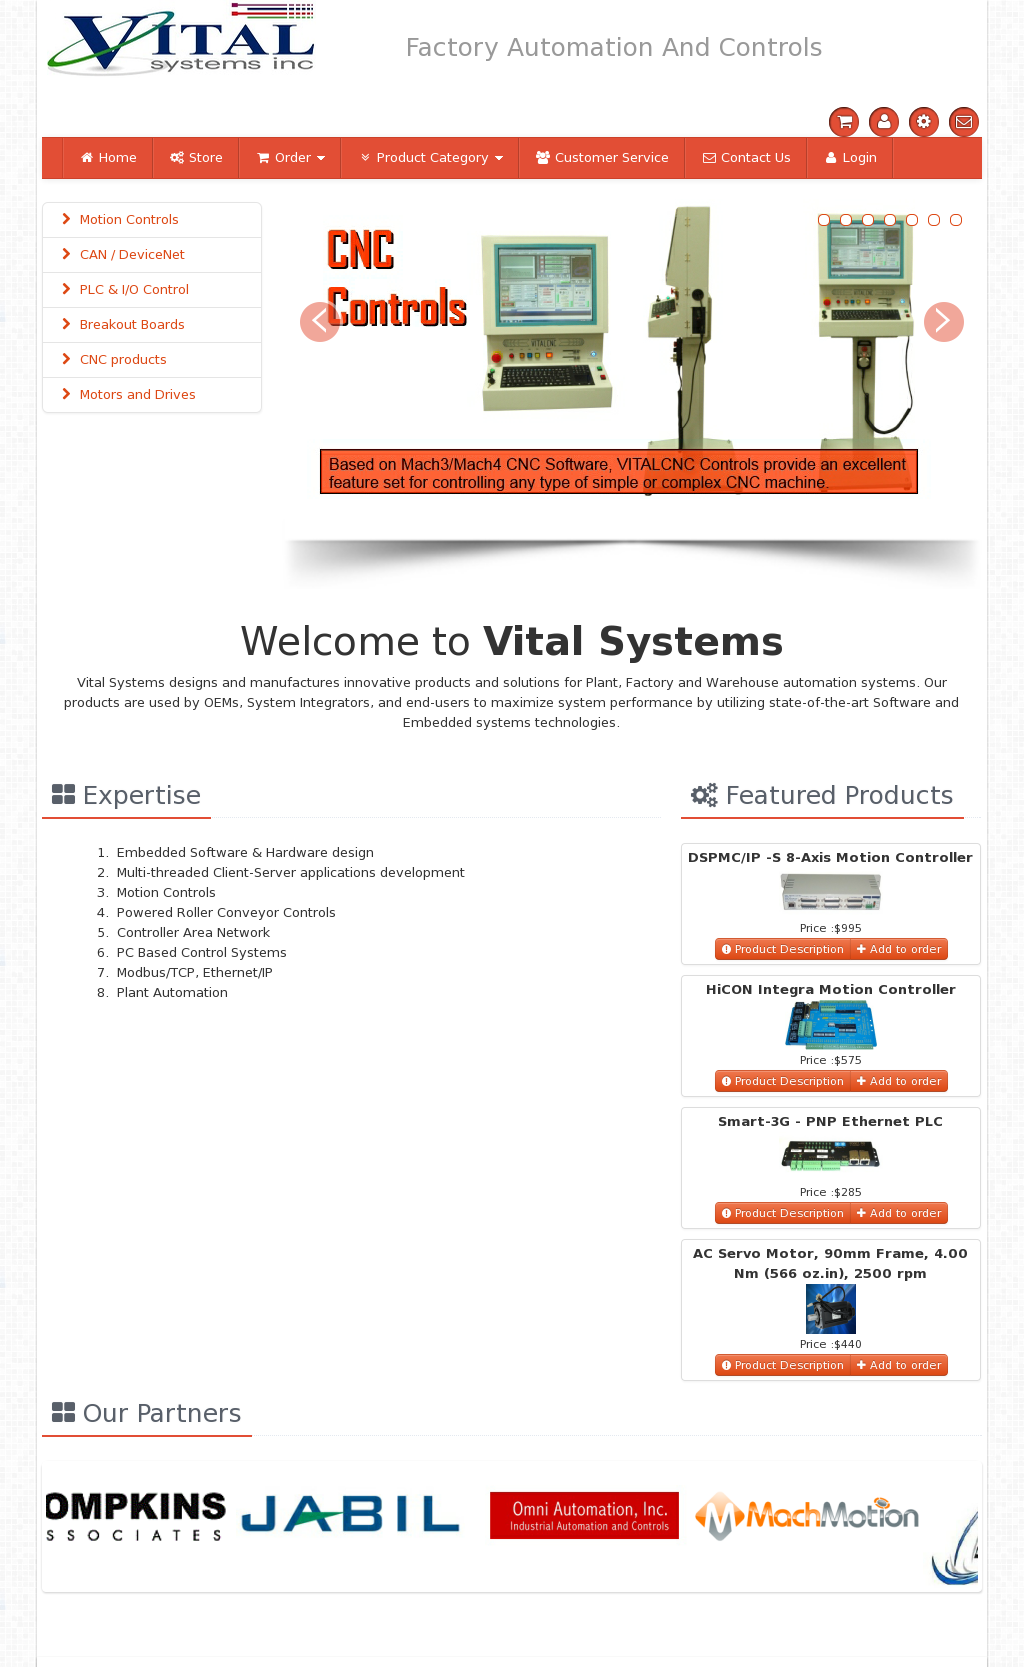 Vitalsystem Competitors, Revenue and Employees - Owler